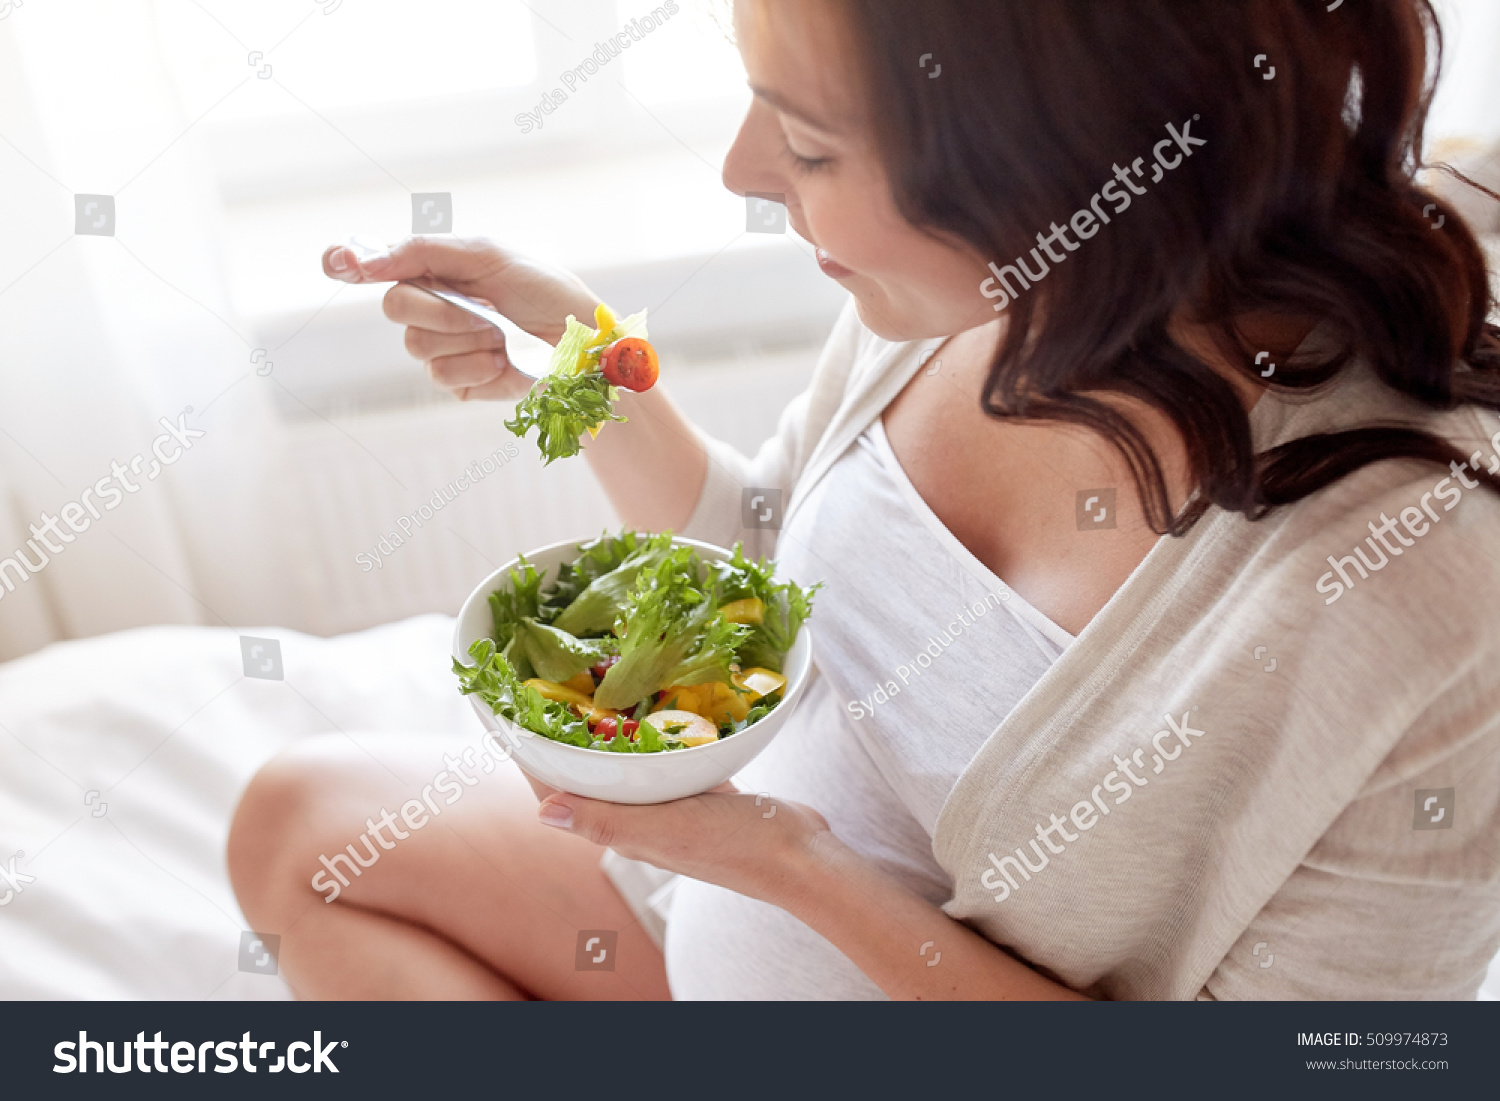 Pregnancy Healthy Food People Concept Close Stock Photo -6136